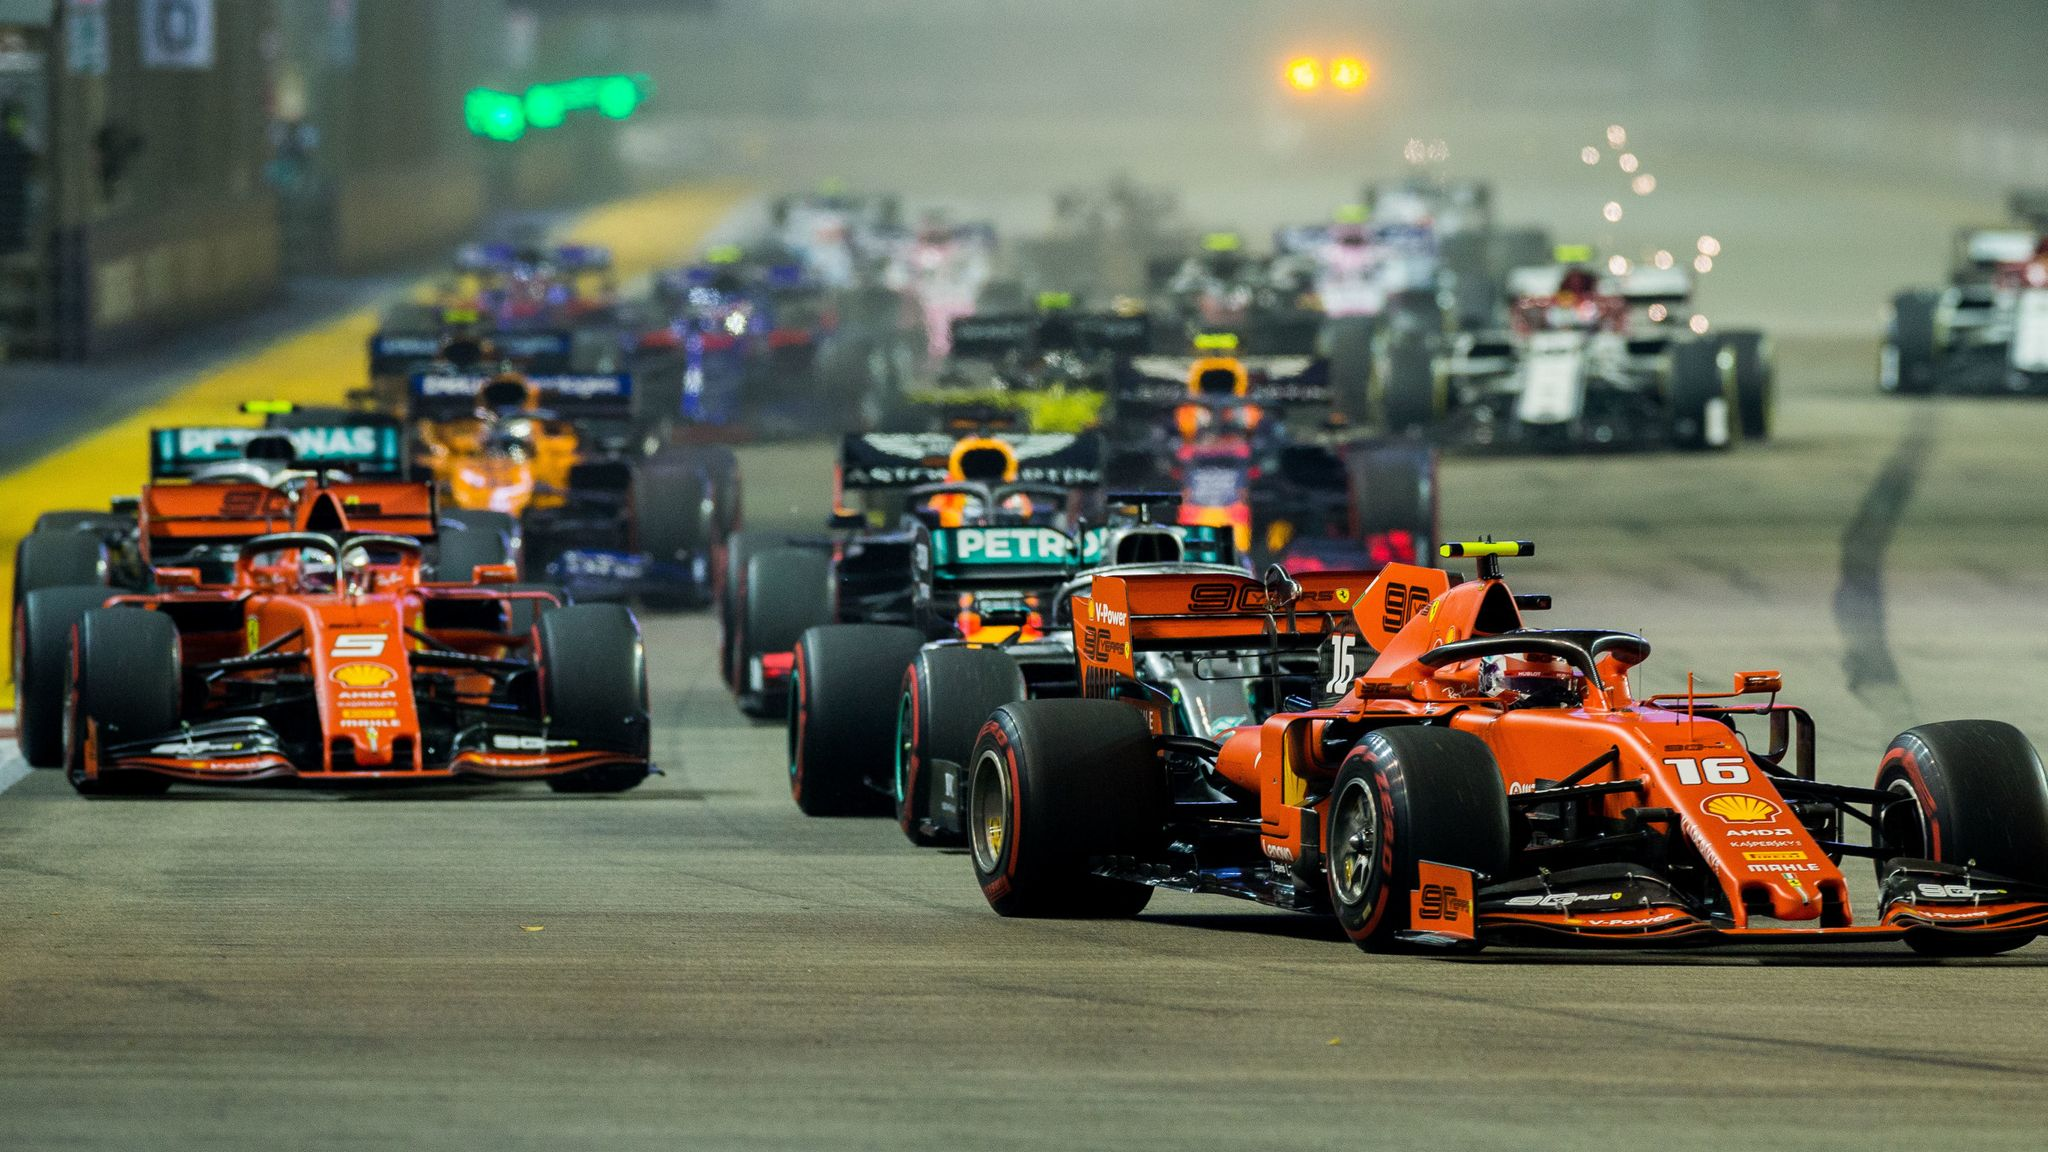 F1 Looking At Format Experiments In 2020 Says Ross Brawn As He Reacts To Driver Criticism F1 News